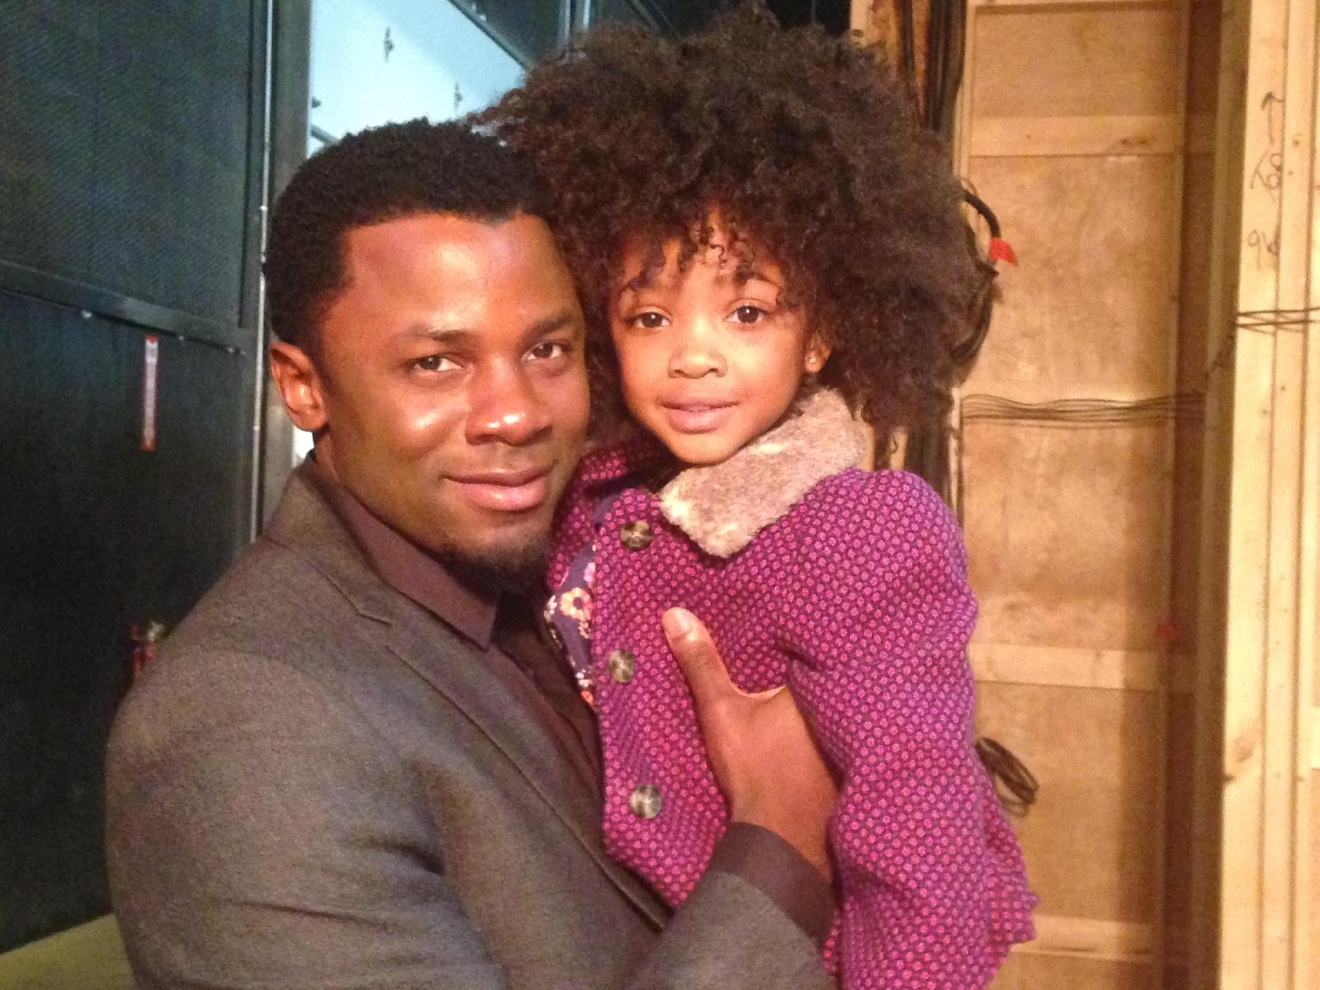 Leah Jeffires with actor, Derek Luke who plays Malcolm on Empire.